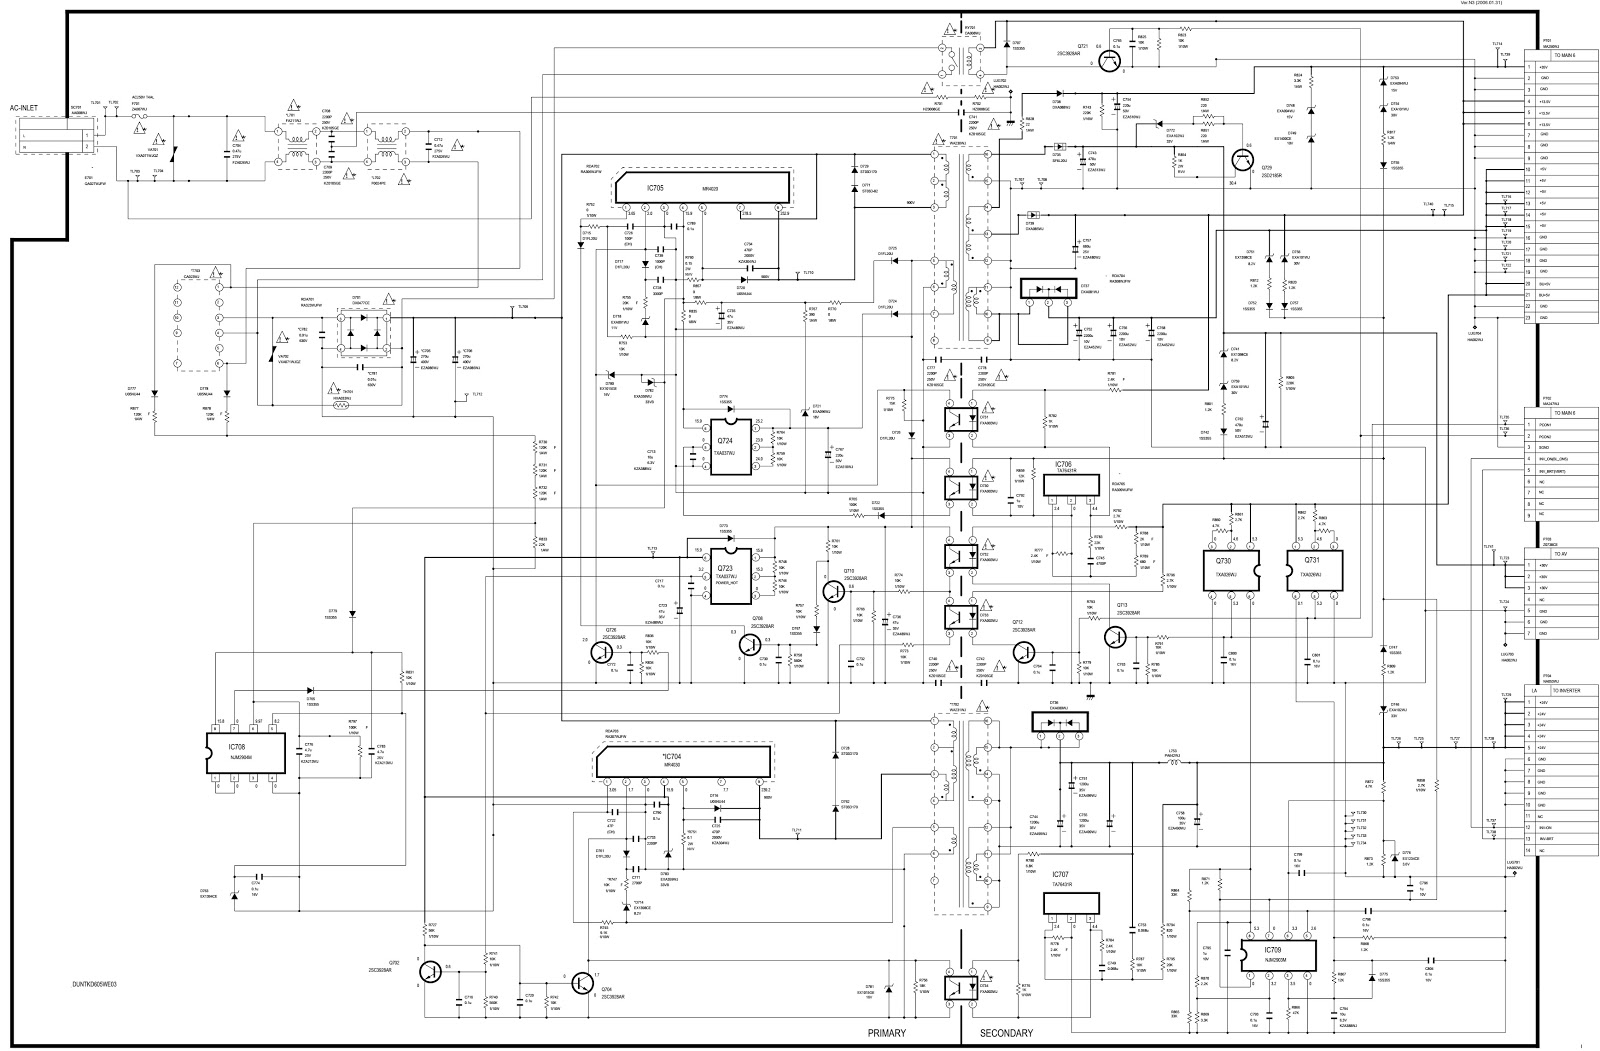 Schematic Diagrams Sharp Lc26 Lc32 And Sharp Lc37 Lcd